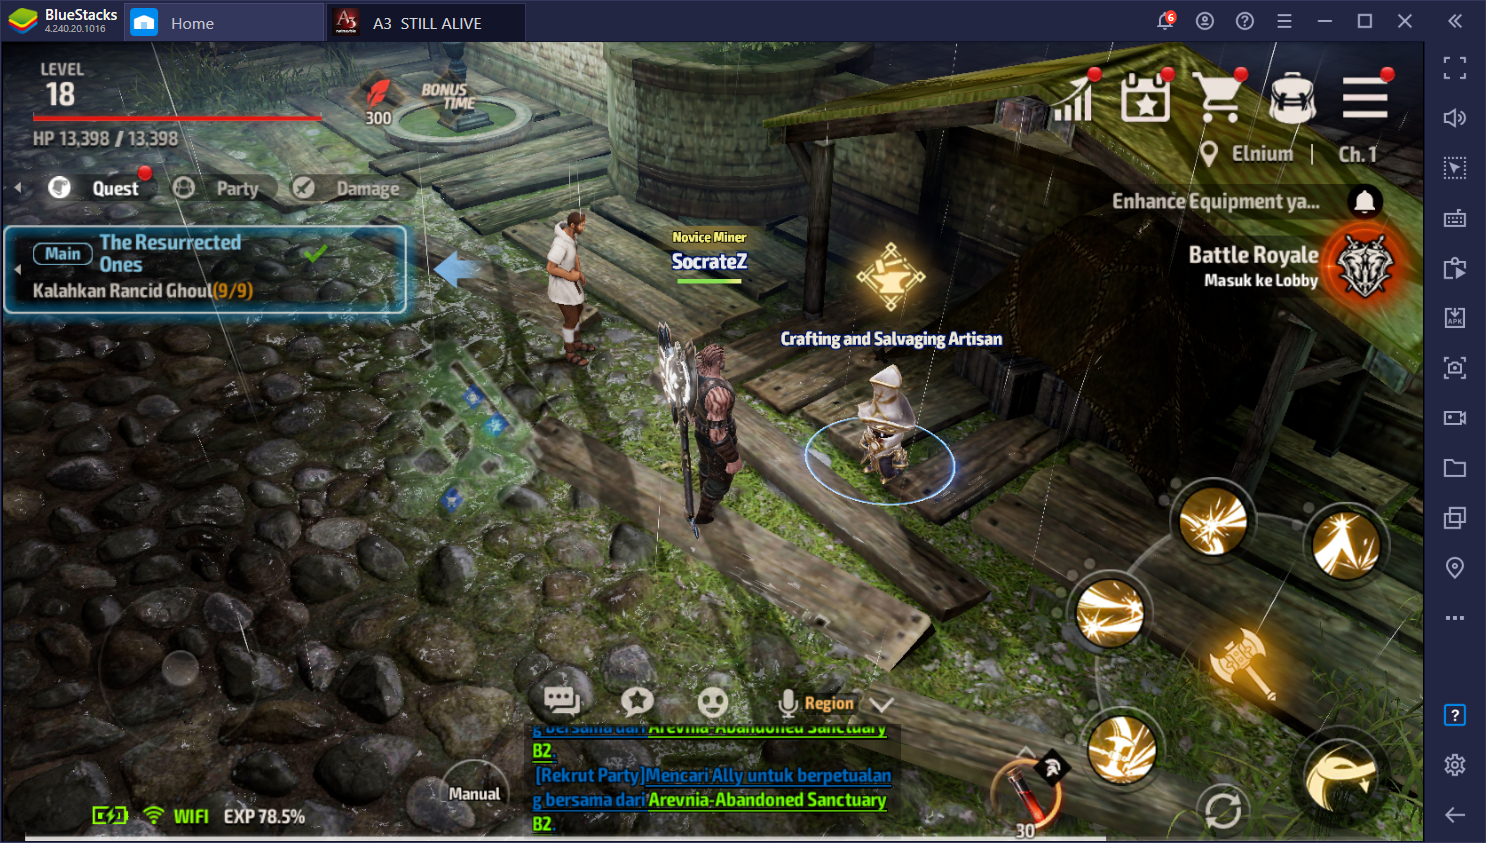 Nikmati Kombinasi MMORPG & Battle Royale di A3: Still Alive di PC dan Mac dengan BlueStacks